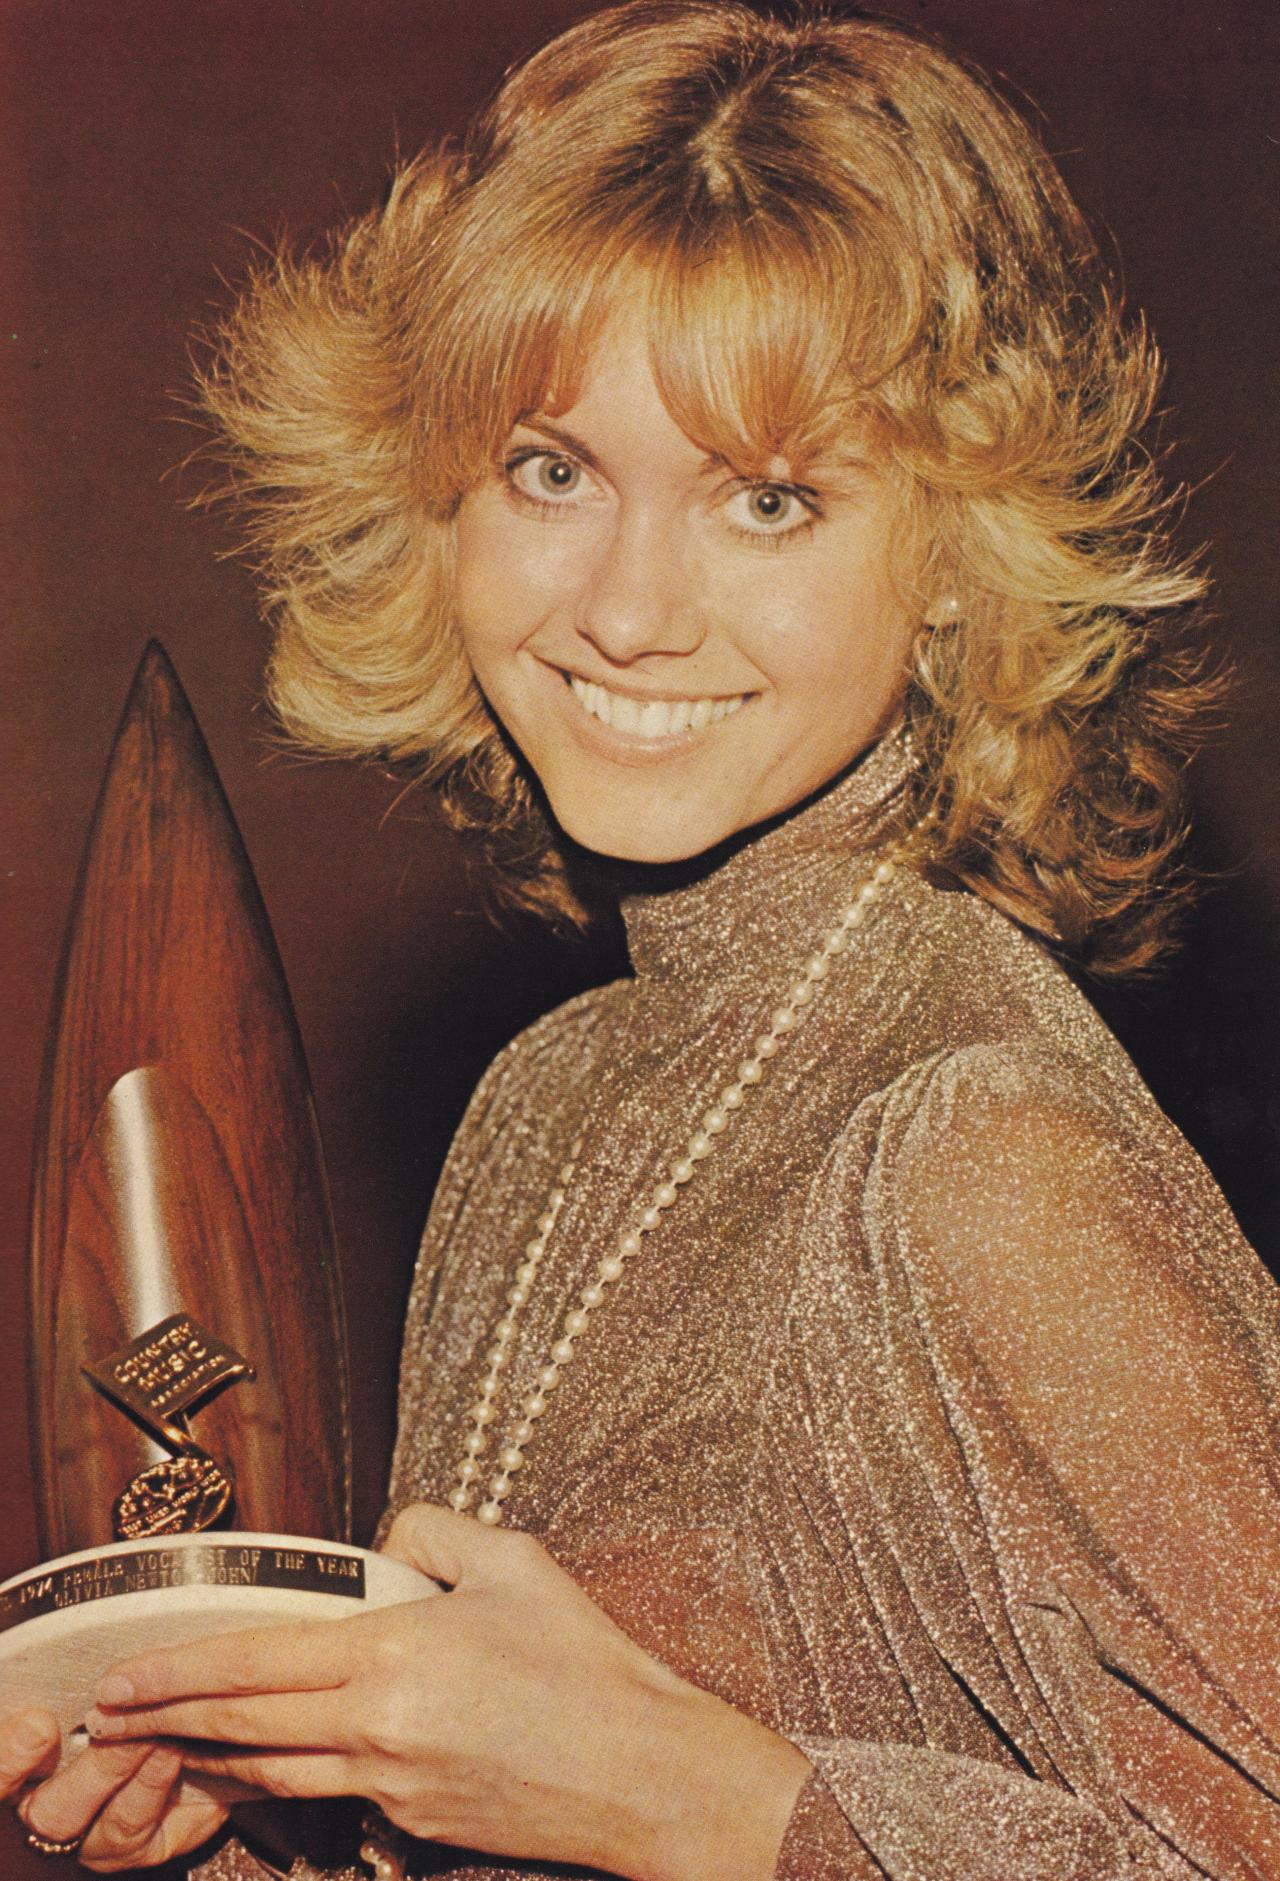 Singer Olivia Newton John at the Country Music Association Awards CMA Awards 1974. Olivia Newton John has released 28 studio albums, six live albums, seventeen compilations and four soundtracks